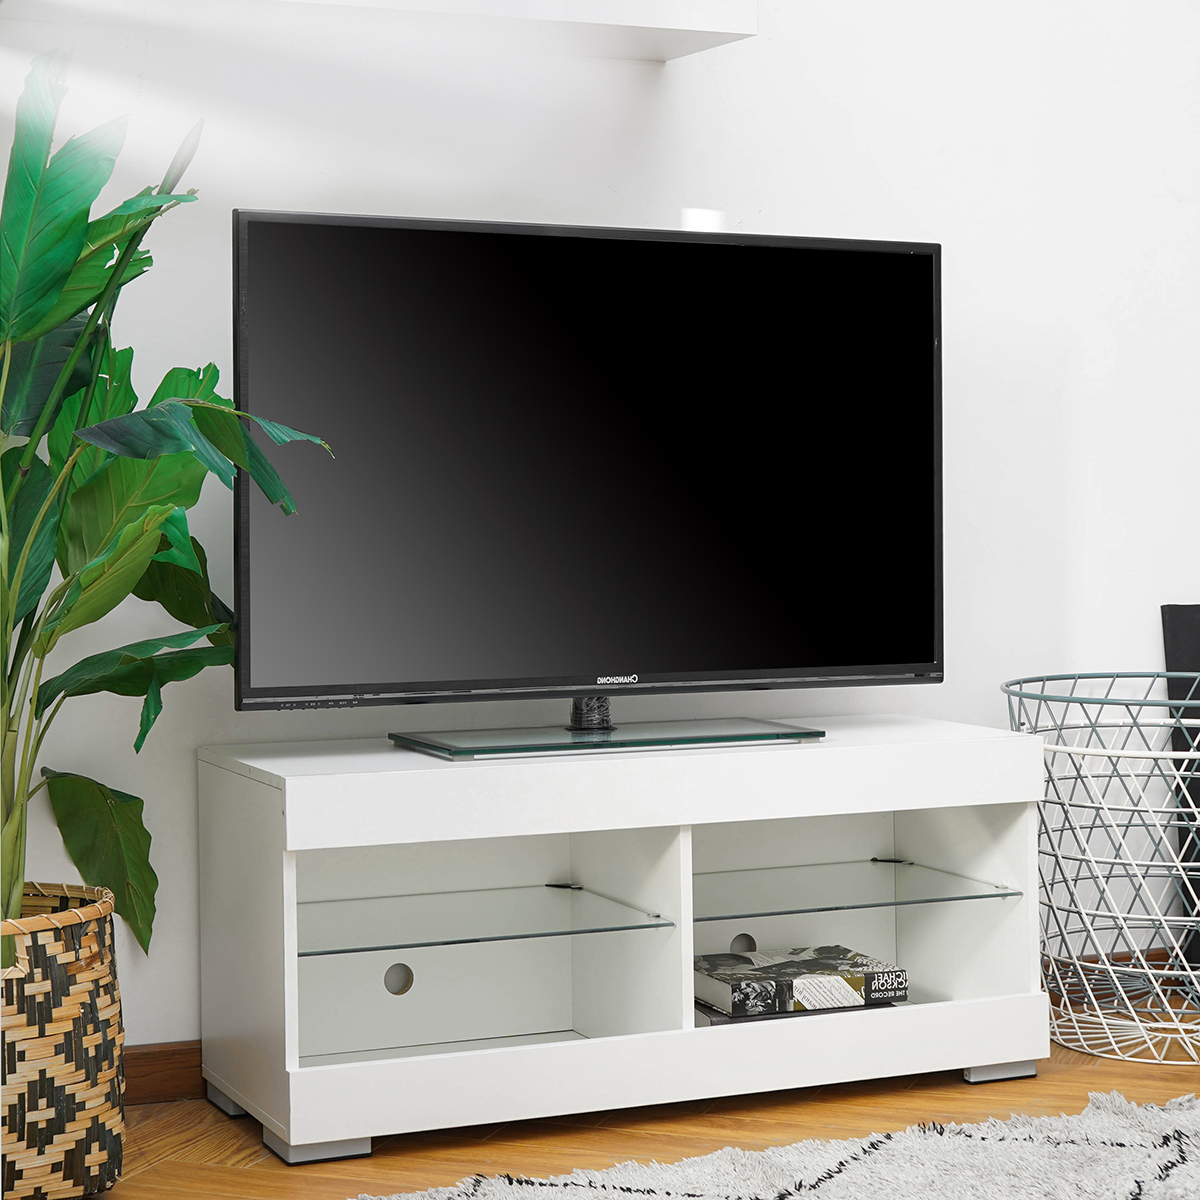 Wood Television Stand Modern Tv Stand Cabinet With Led Throughout Glass Shelf With Tv Stands (View 5 of 20)